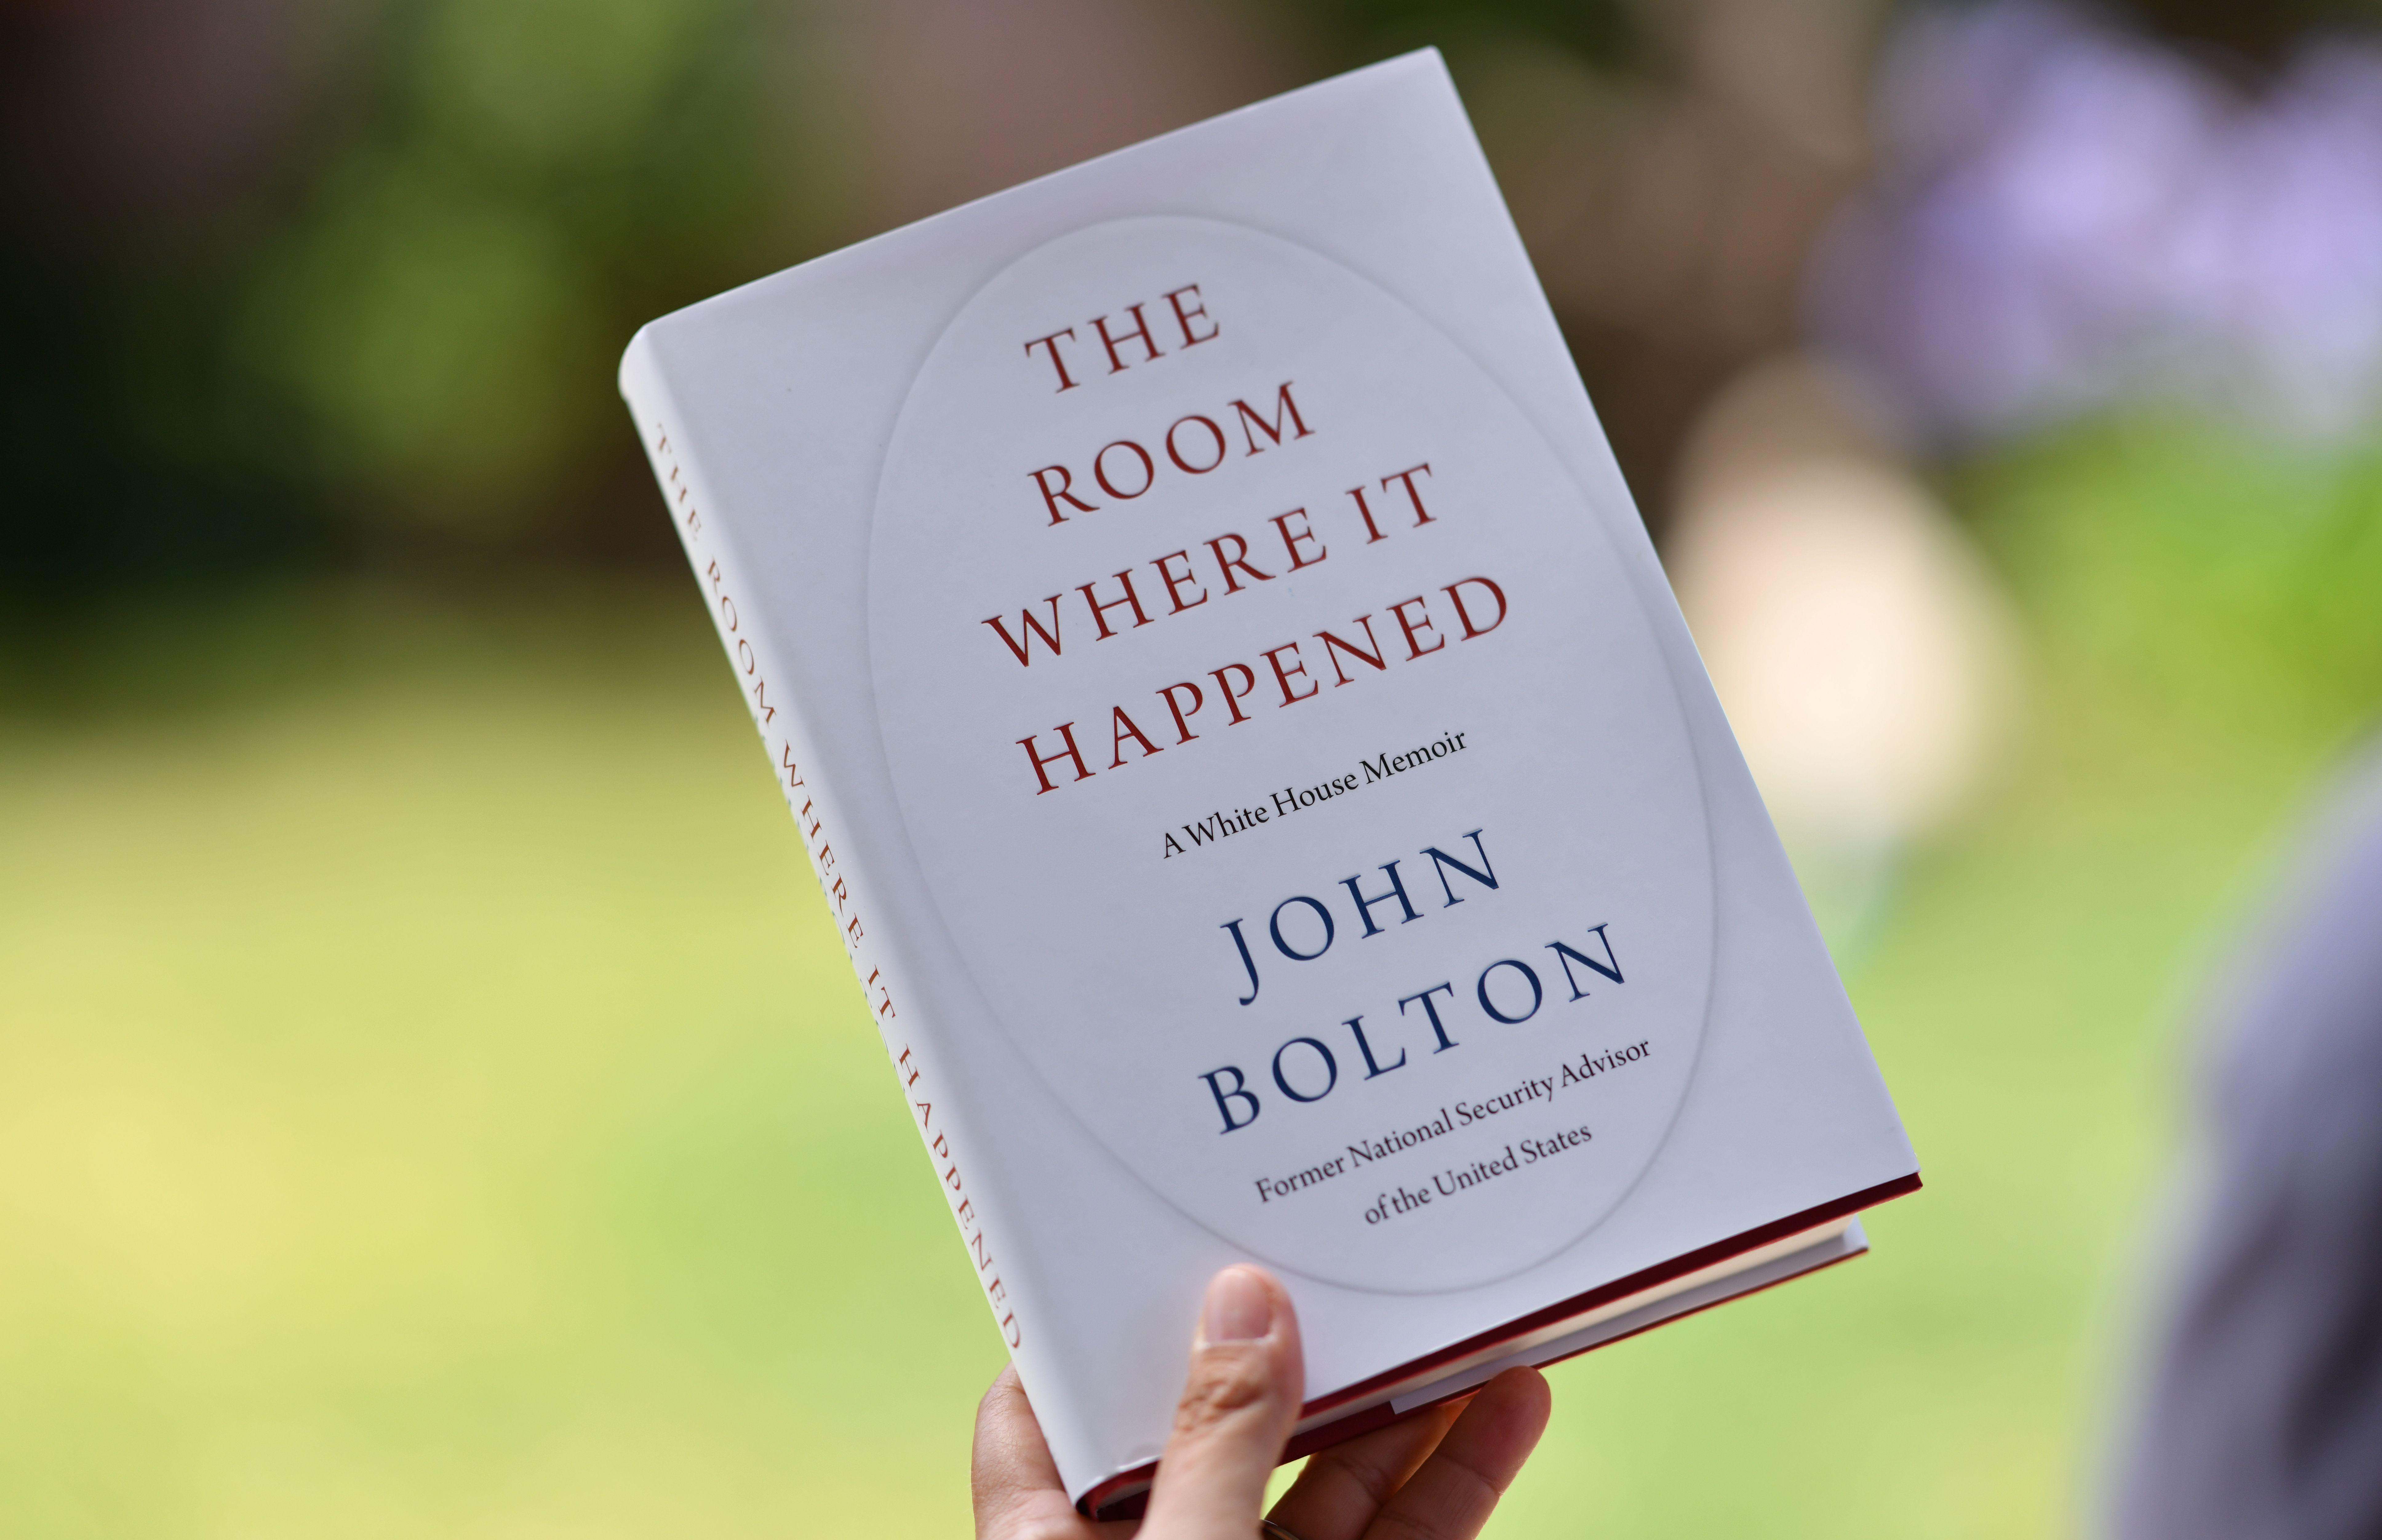 """TOPSHOT - This illustration photo taken on June 23, 2020 in Glendale, California, shows John Bolton's book """"The Room Where it Happened"""" on the day of it's release in Los Angeles. - The Trump administration tried unsuccessfully to block publication of Bolton's book claiming it contained classified national security information.Former US national security advisor John Bolton said Sunday he thinks North Korean leader Kim Jong Un """"gets a huge laugh"""" over US counterpart Donald Trump's perception of their relationship. Bolton spoke to ABC News for his first interview ahead of the Tuesday release of his tell-all book, which contains many damning allegations against Trump. (Photo by Chris DELMAS / AFP) (Photo by CHRIS DELMAS/AFP via Getty Images)"""